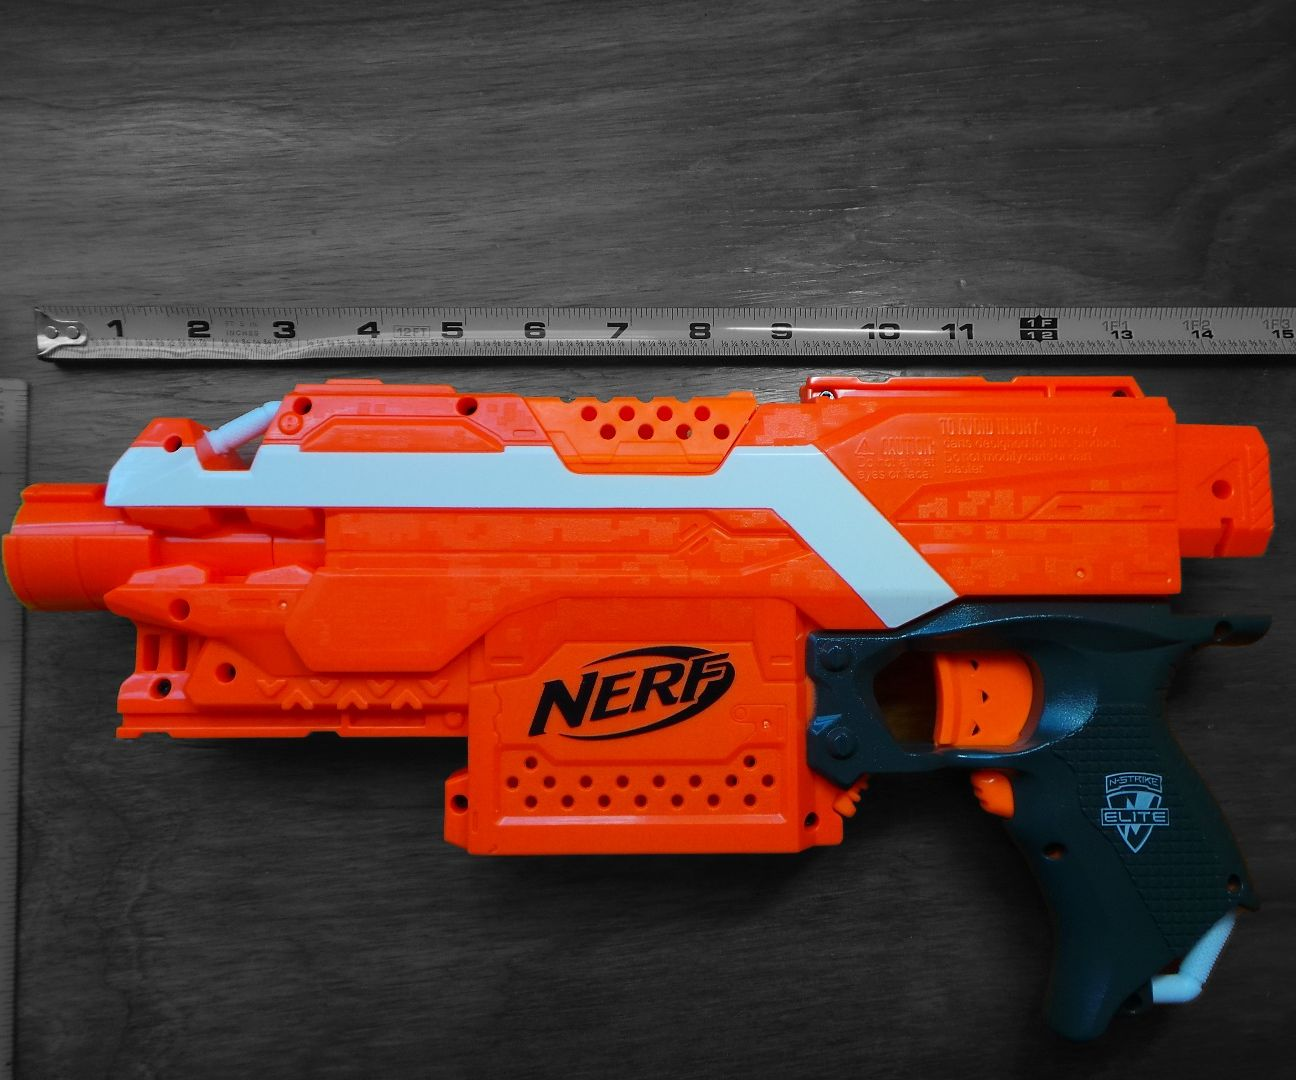 Beginner's Stryfe Modification: 15 Steps (with Pictures)